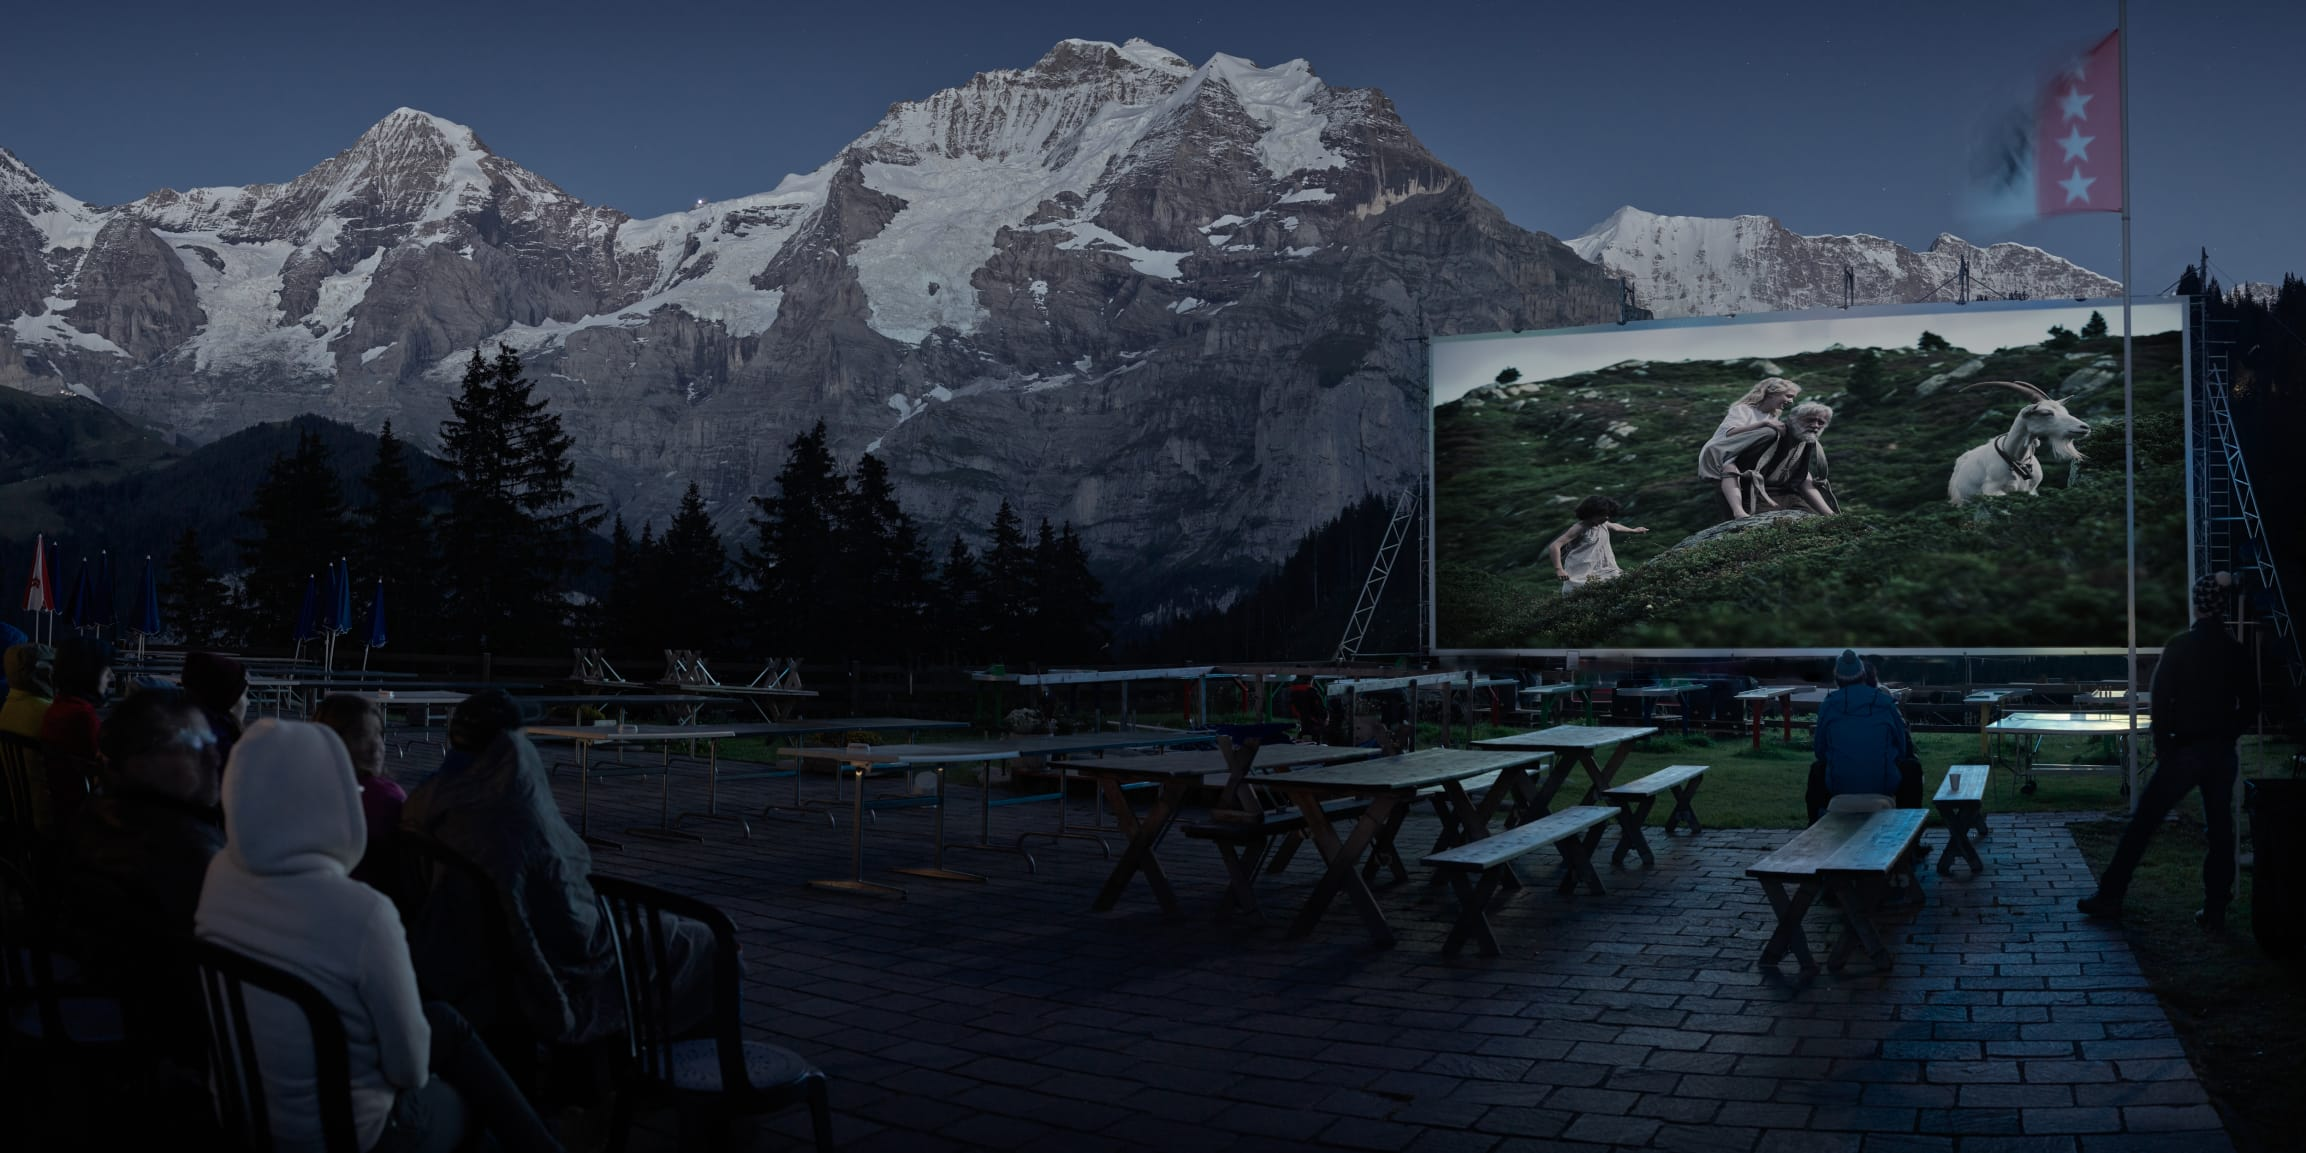 Winteregg Movie Nights Restaurant Terrasse Moench Jungfrau Sommer